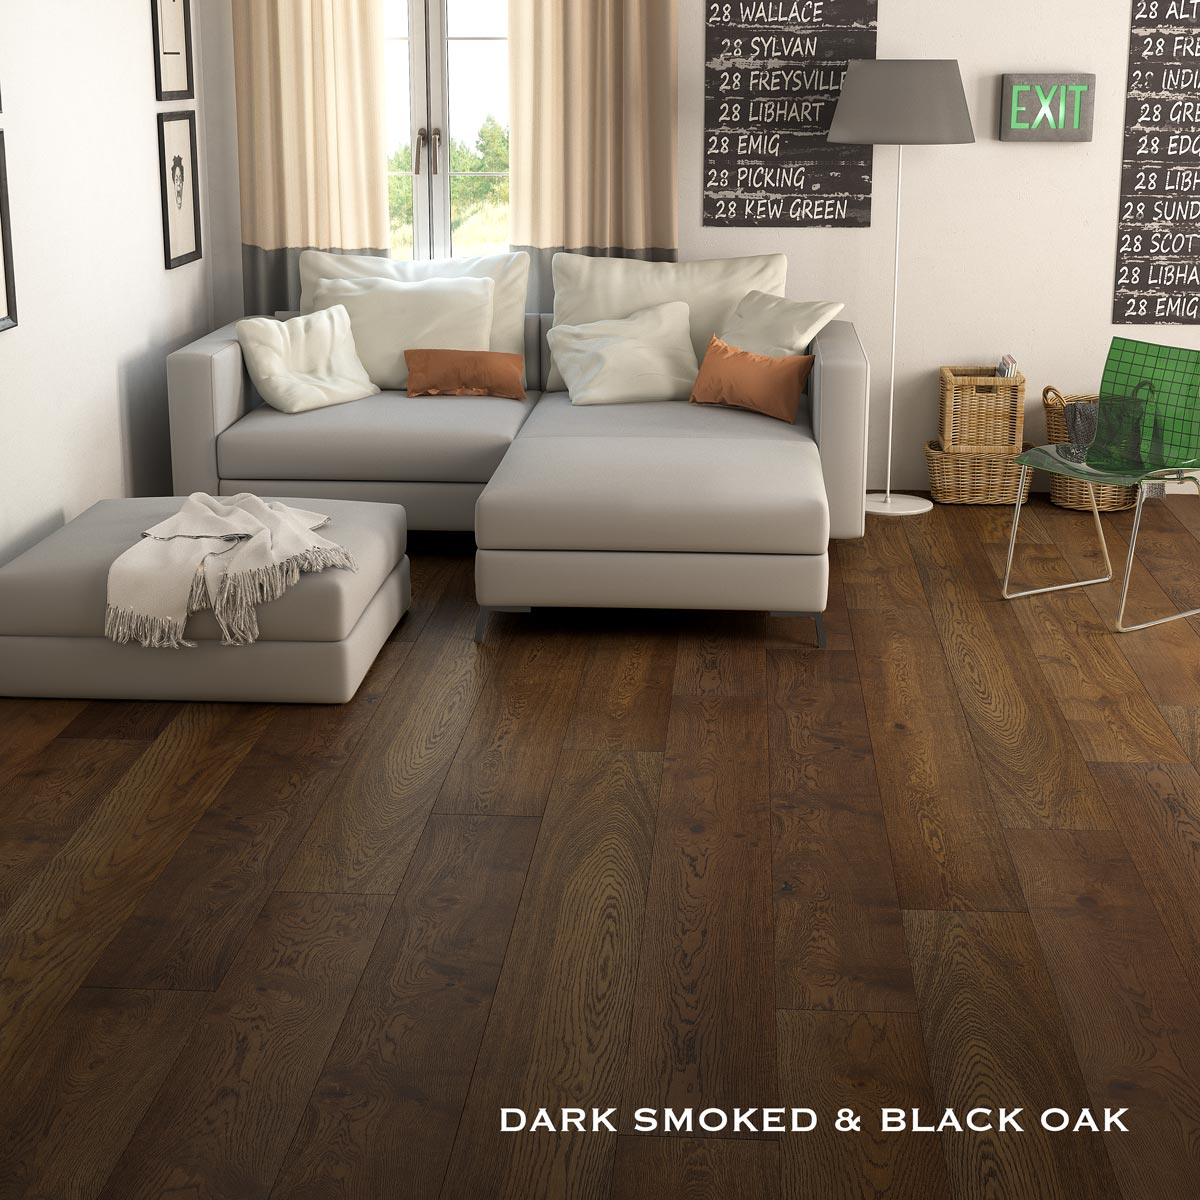 Dark Smoked Black Oak 2